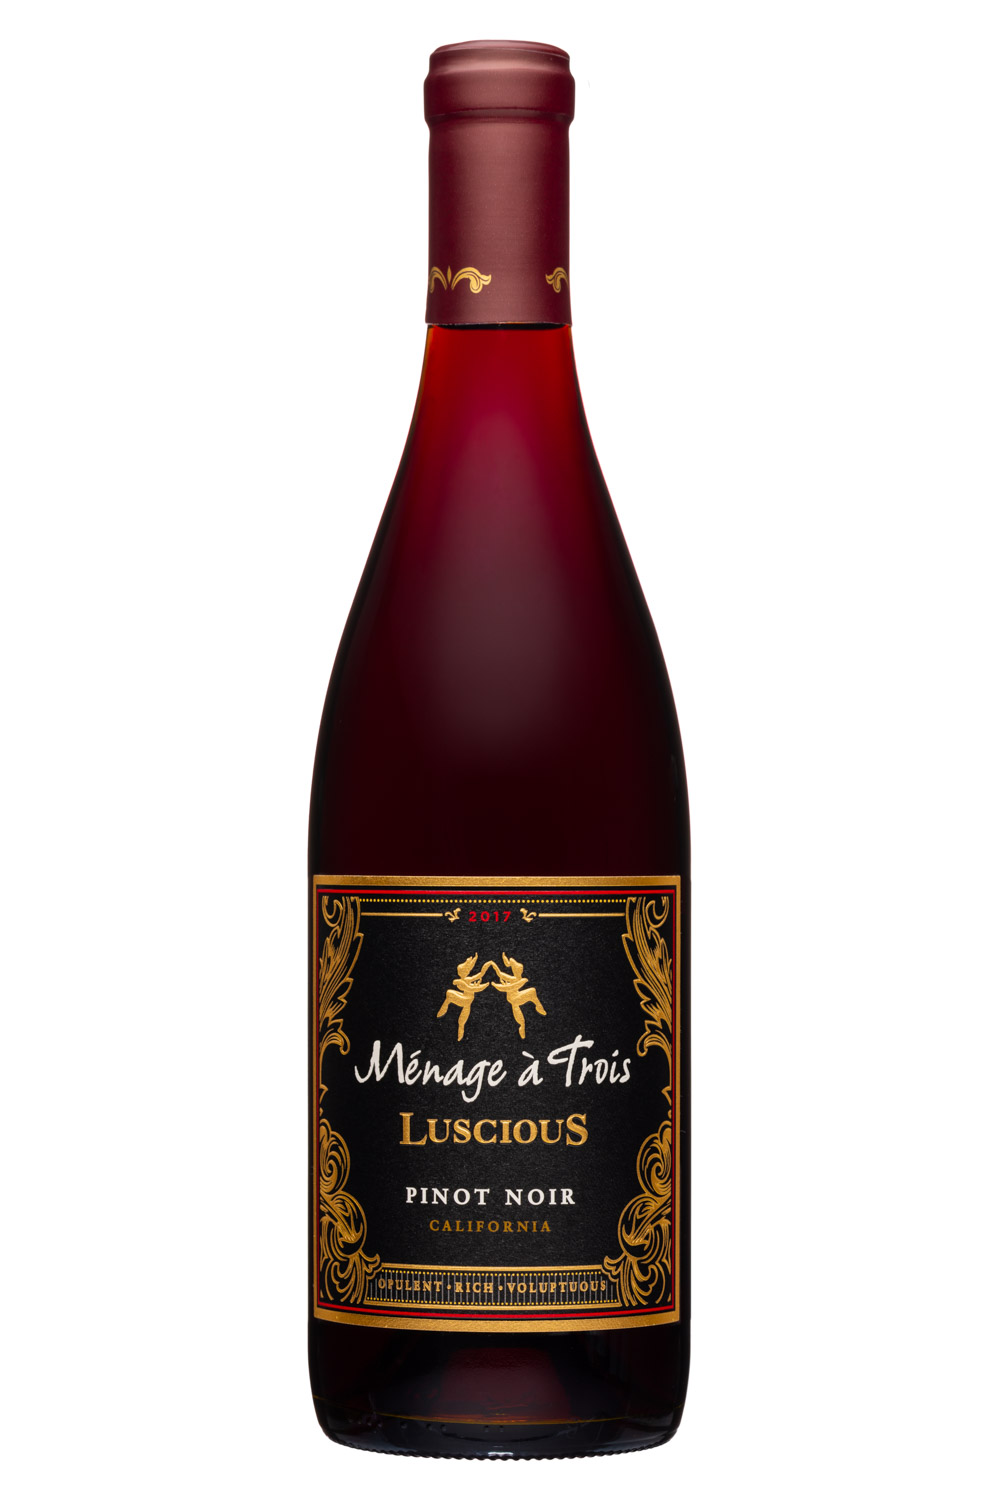 2017 Luscious Pinot Noir - California